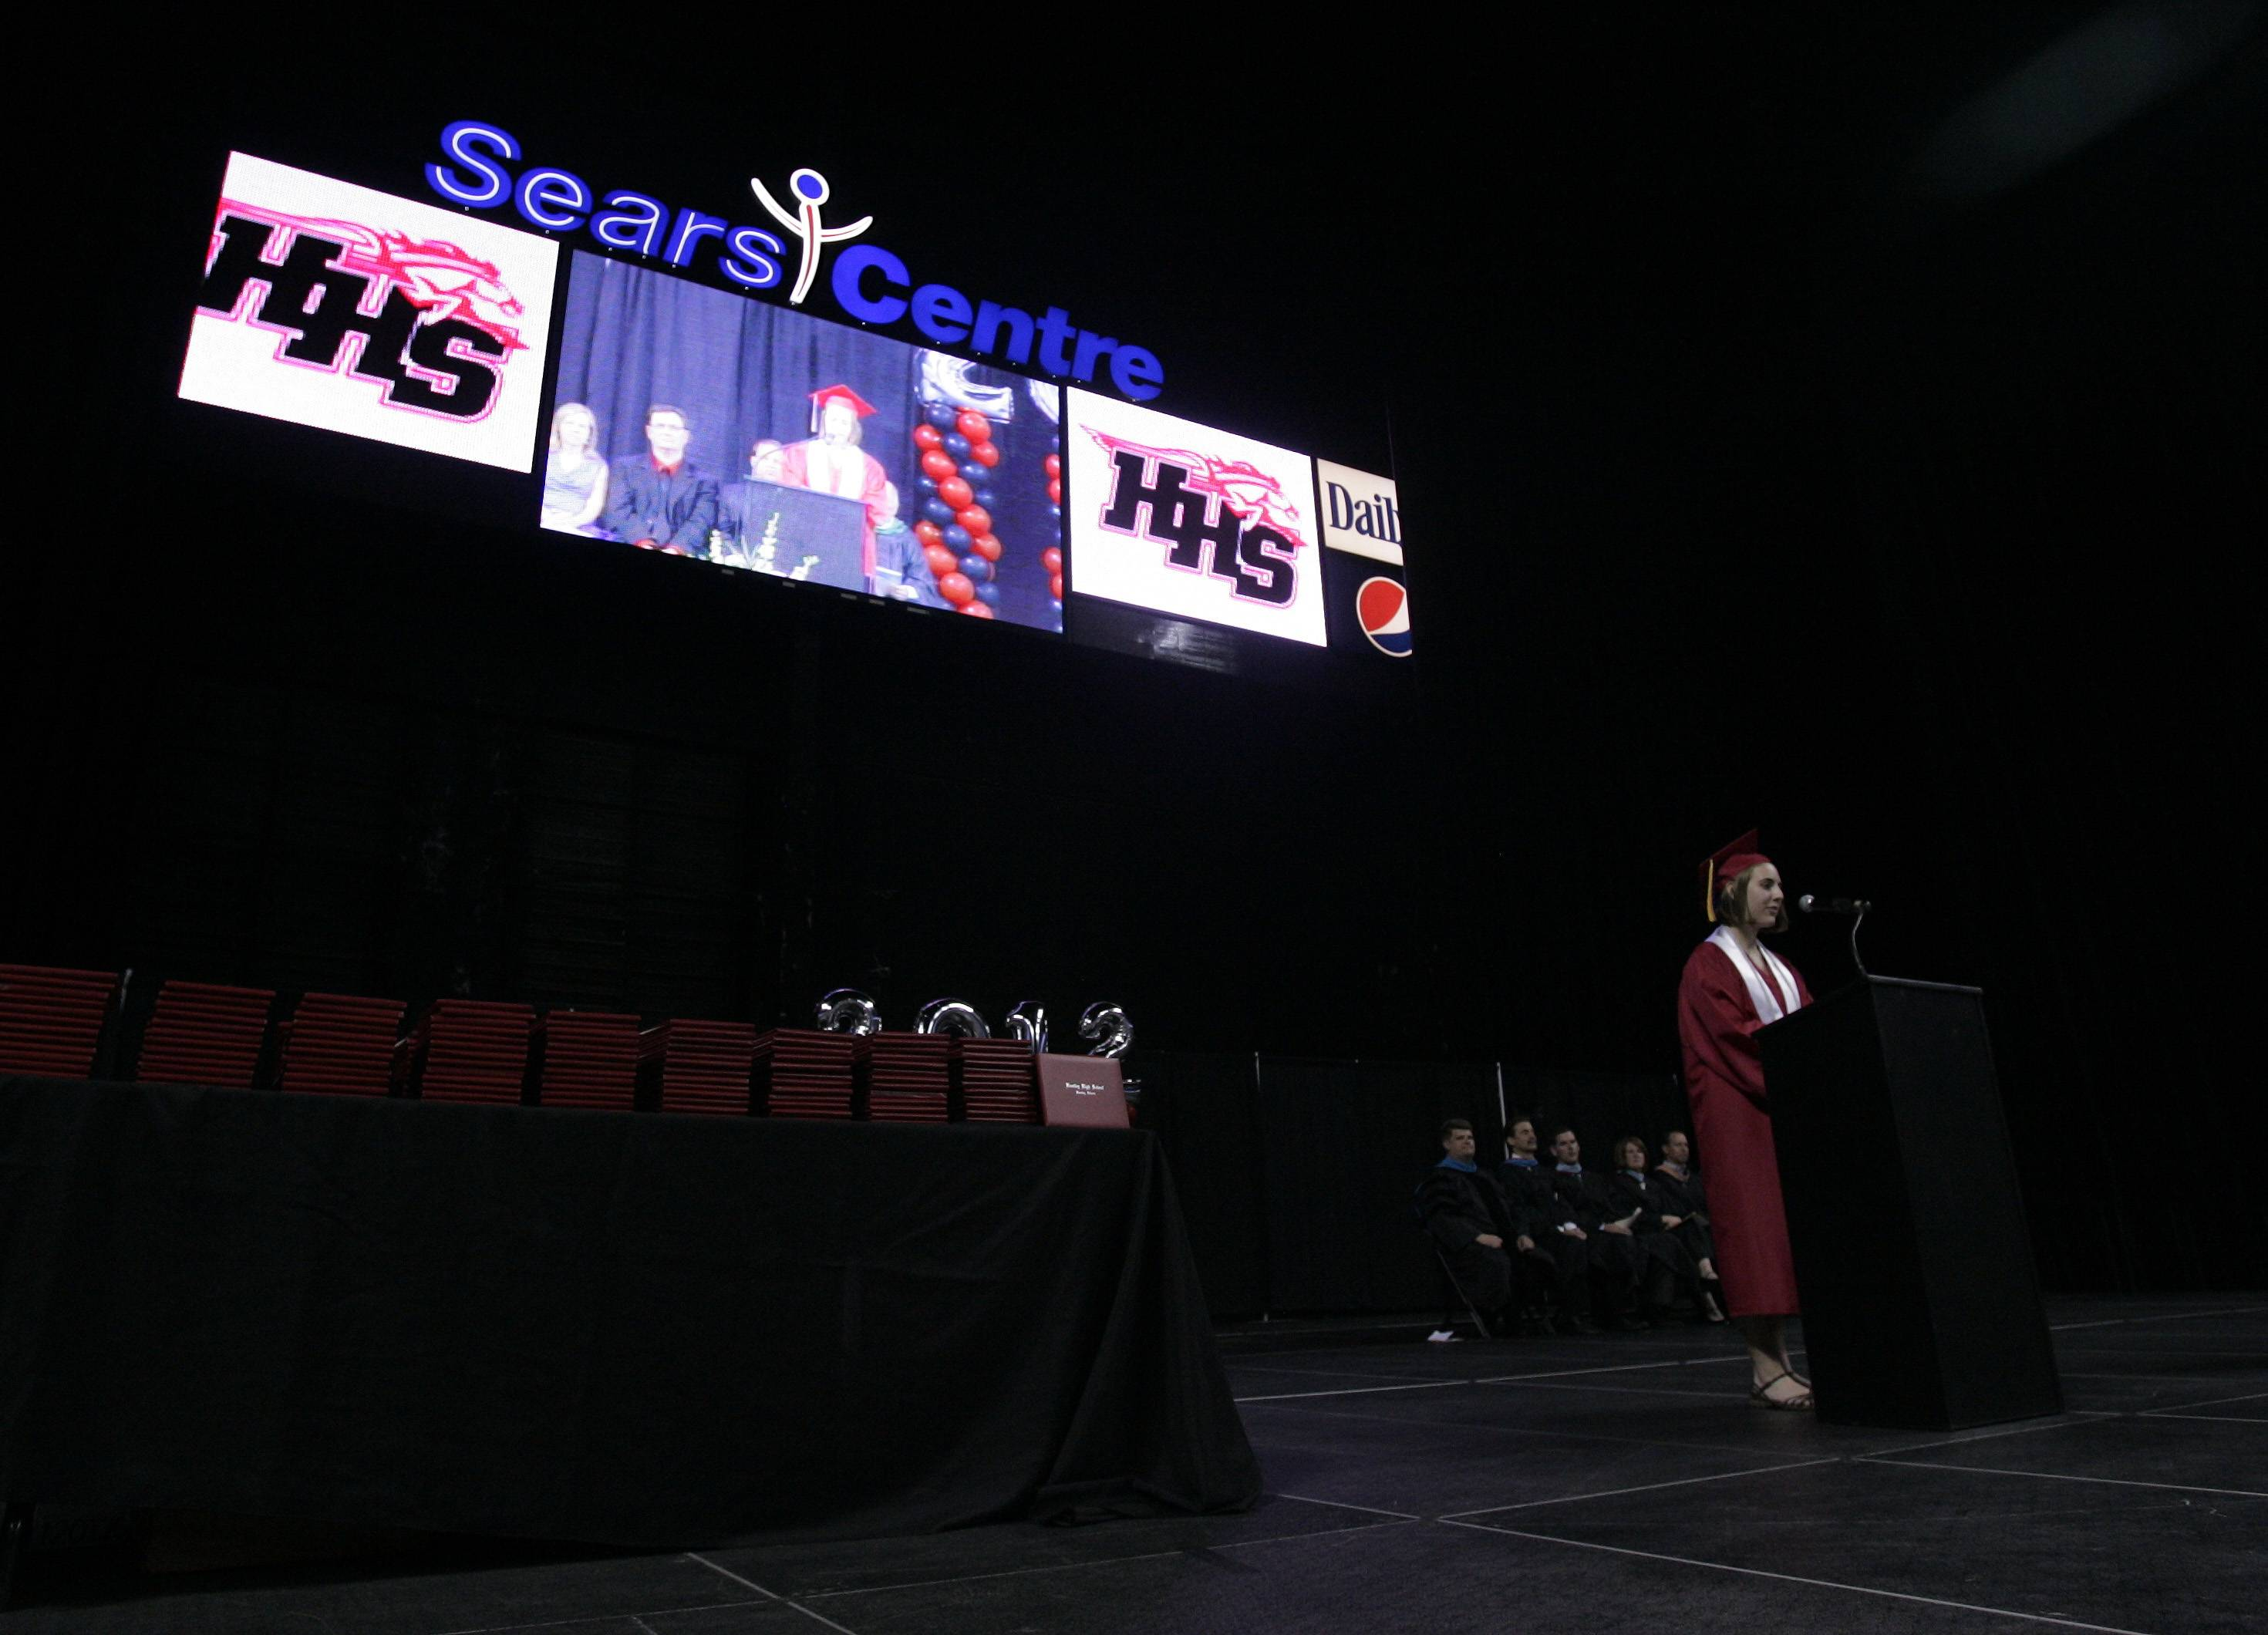 Images from the Huntley High School graduation ceremony at the Sears Centre in Hoffman Estates Saturday, June 2, 2012.